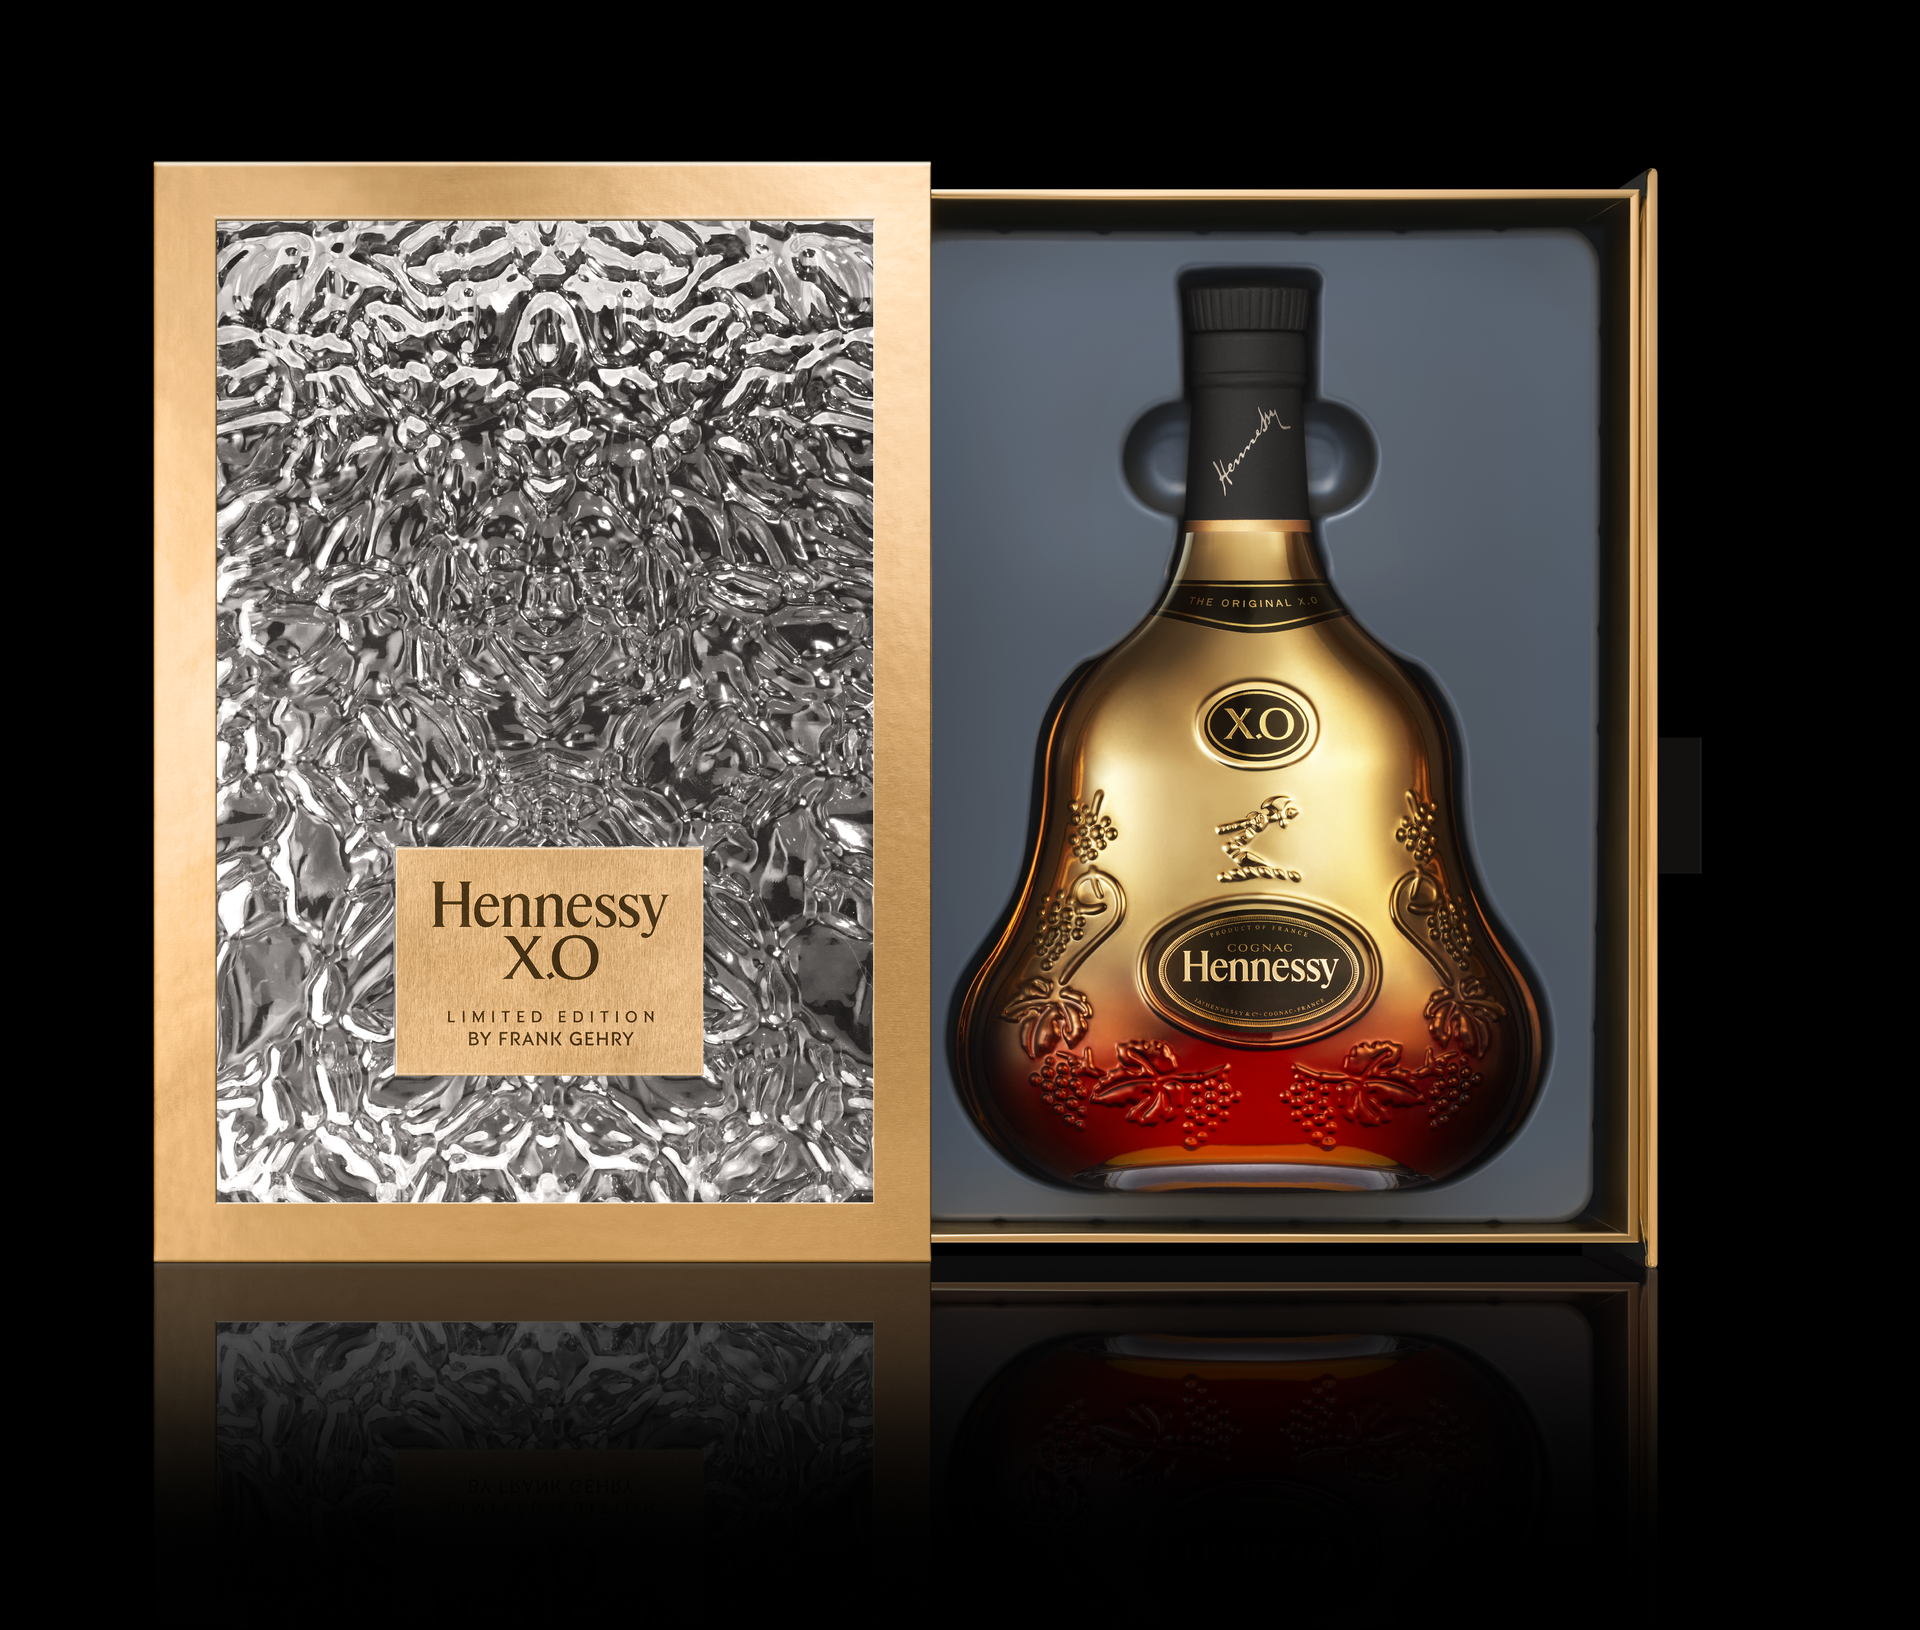 frank gehry, croquis, hennessy XO, lappoms, lifestyle blog